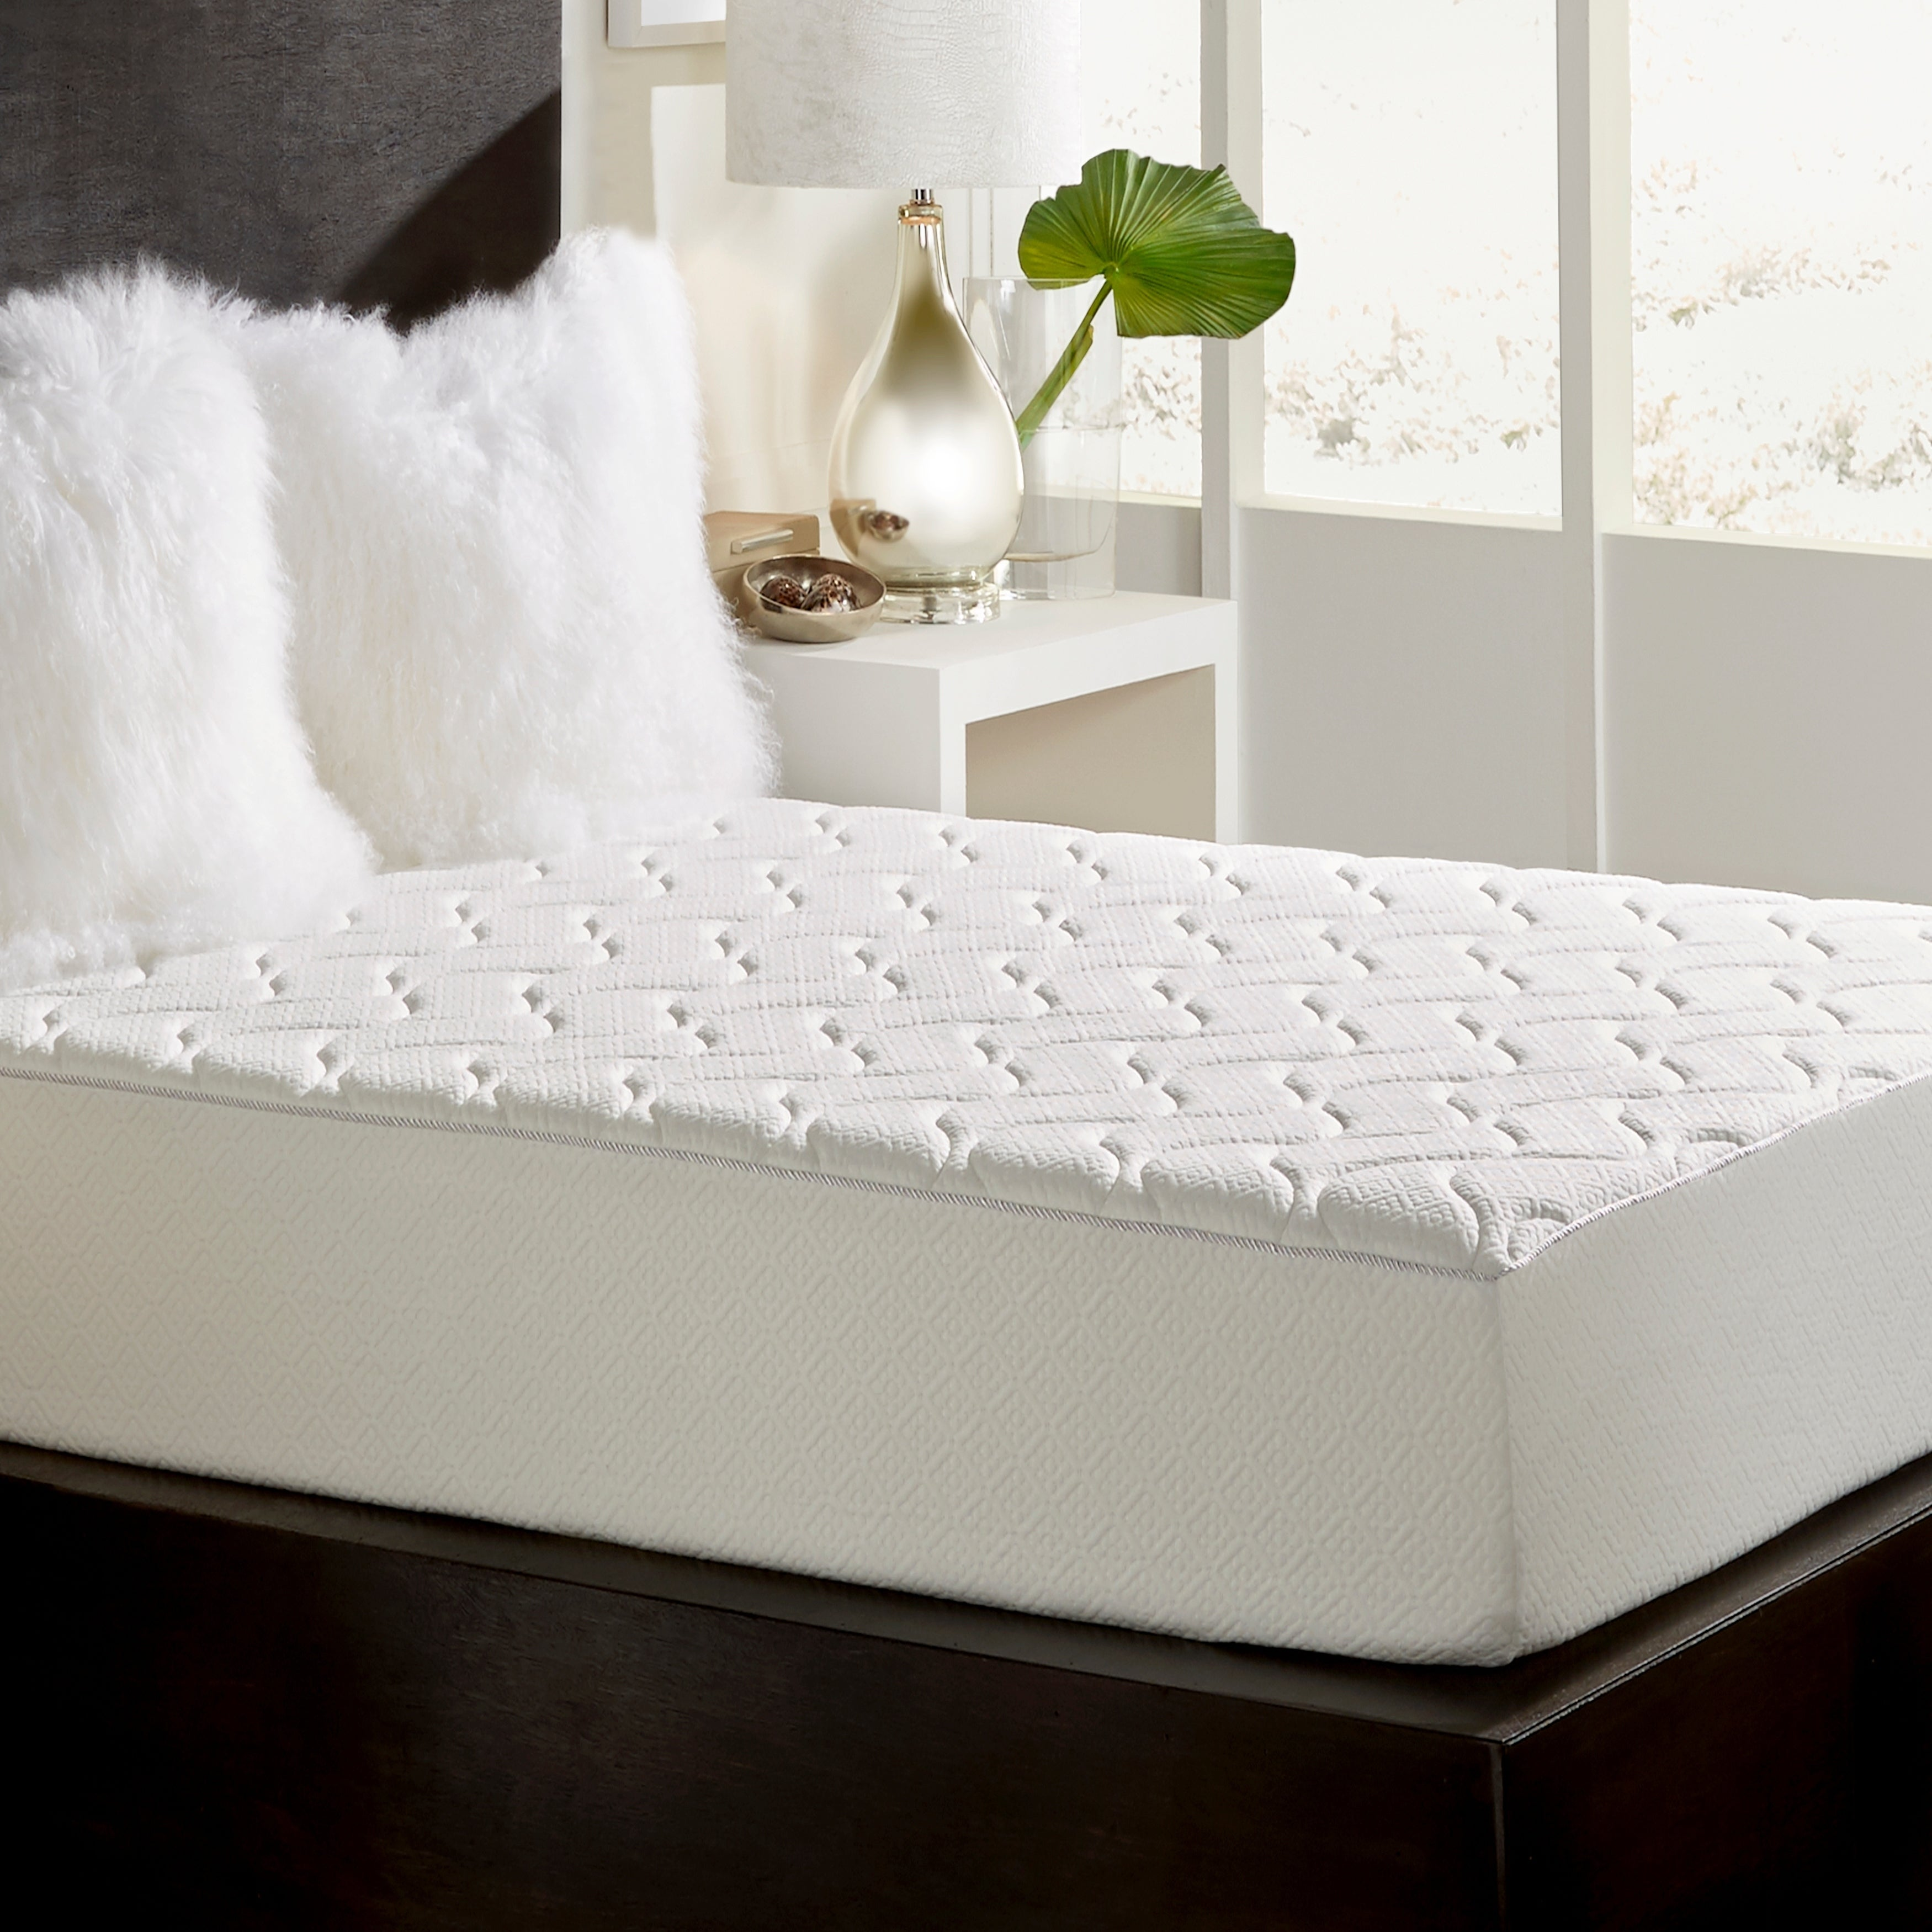 Loftworks Queen Size Medium Firm 10 Inch Memory Foam Mattress With Quilted Euro Top